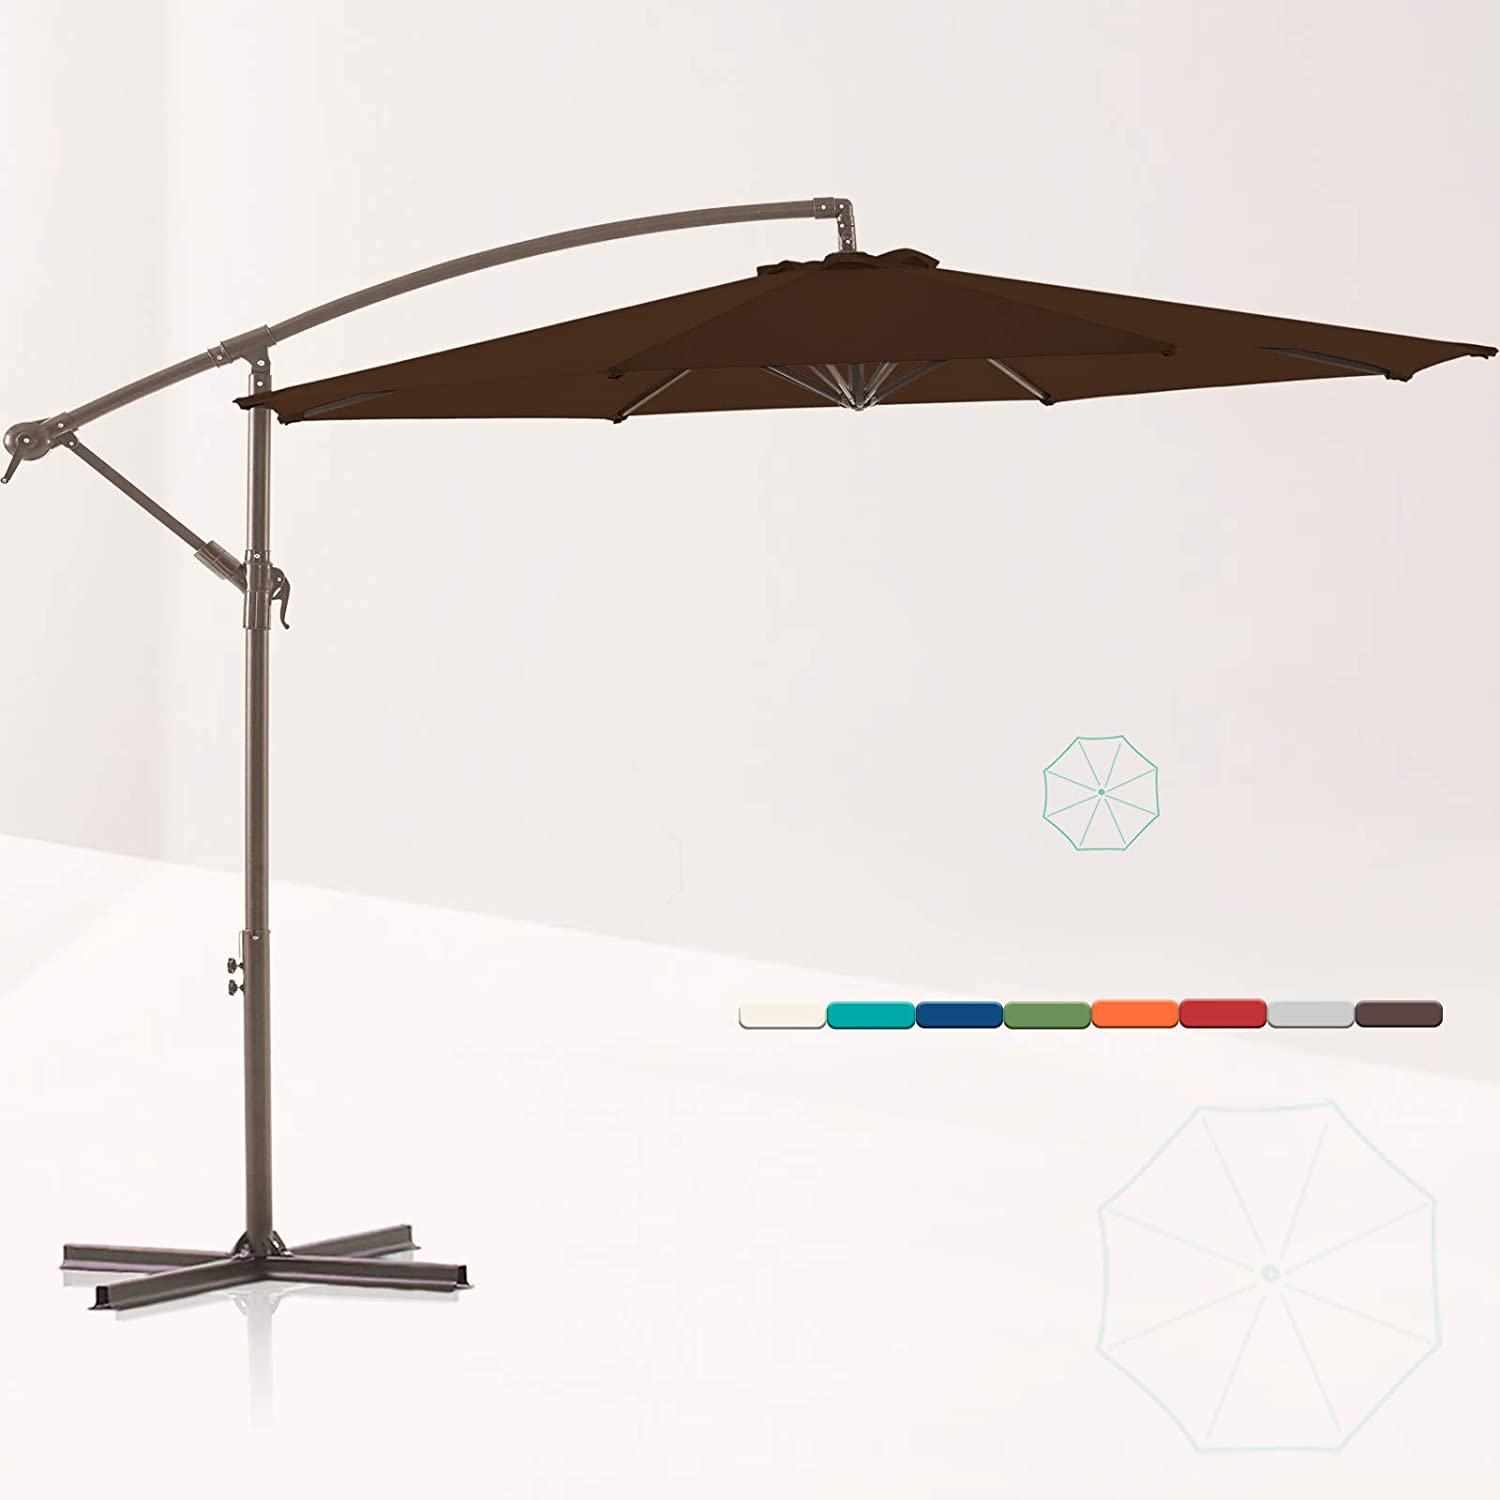 LE CONTE METZ 10 ft. Offset Hanging Patio Umbrella Cantilever Outdoor Umbrellas with Fade Resistant Solution-Dyed Canopy, Infinite Tilt, Crank & Cross Base (Coffee Brown)